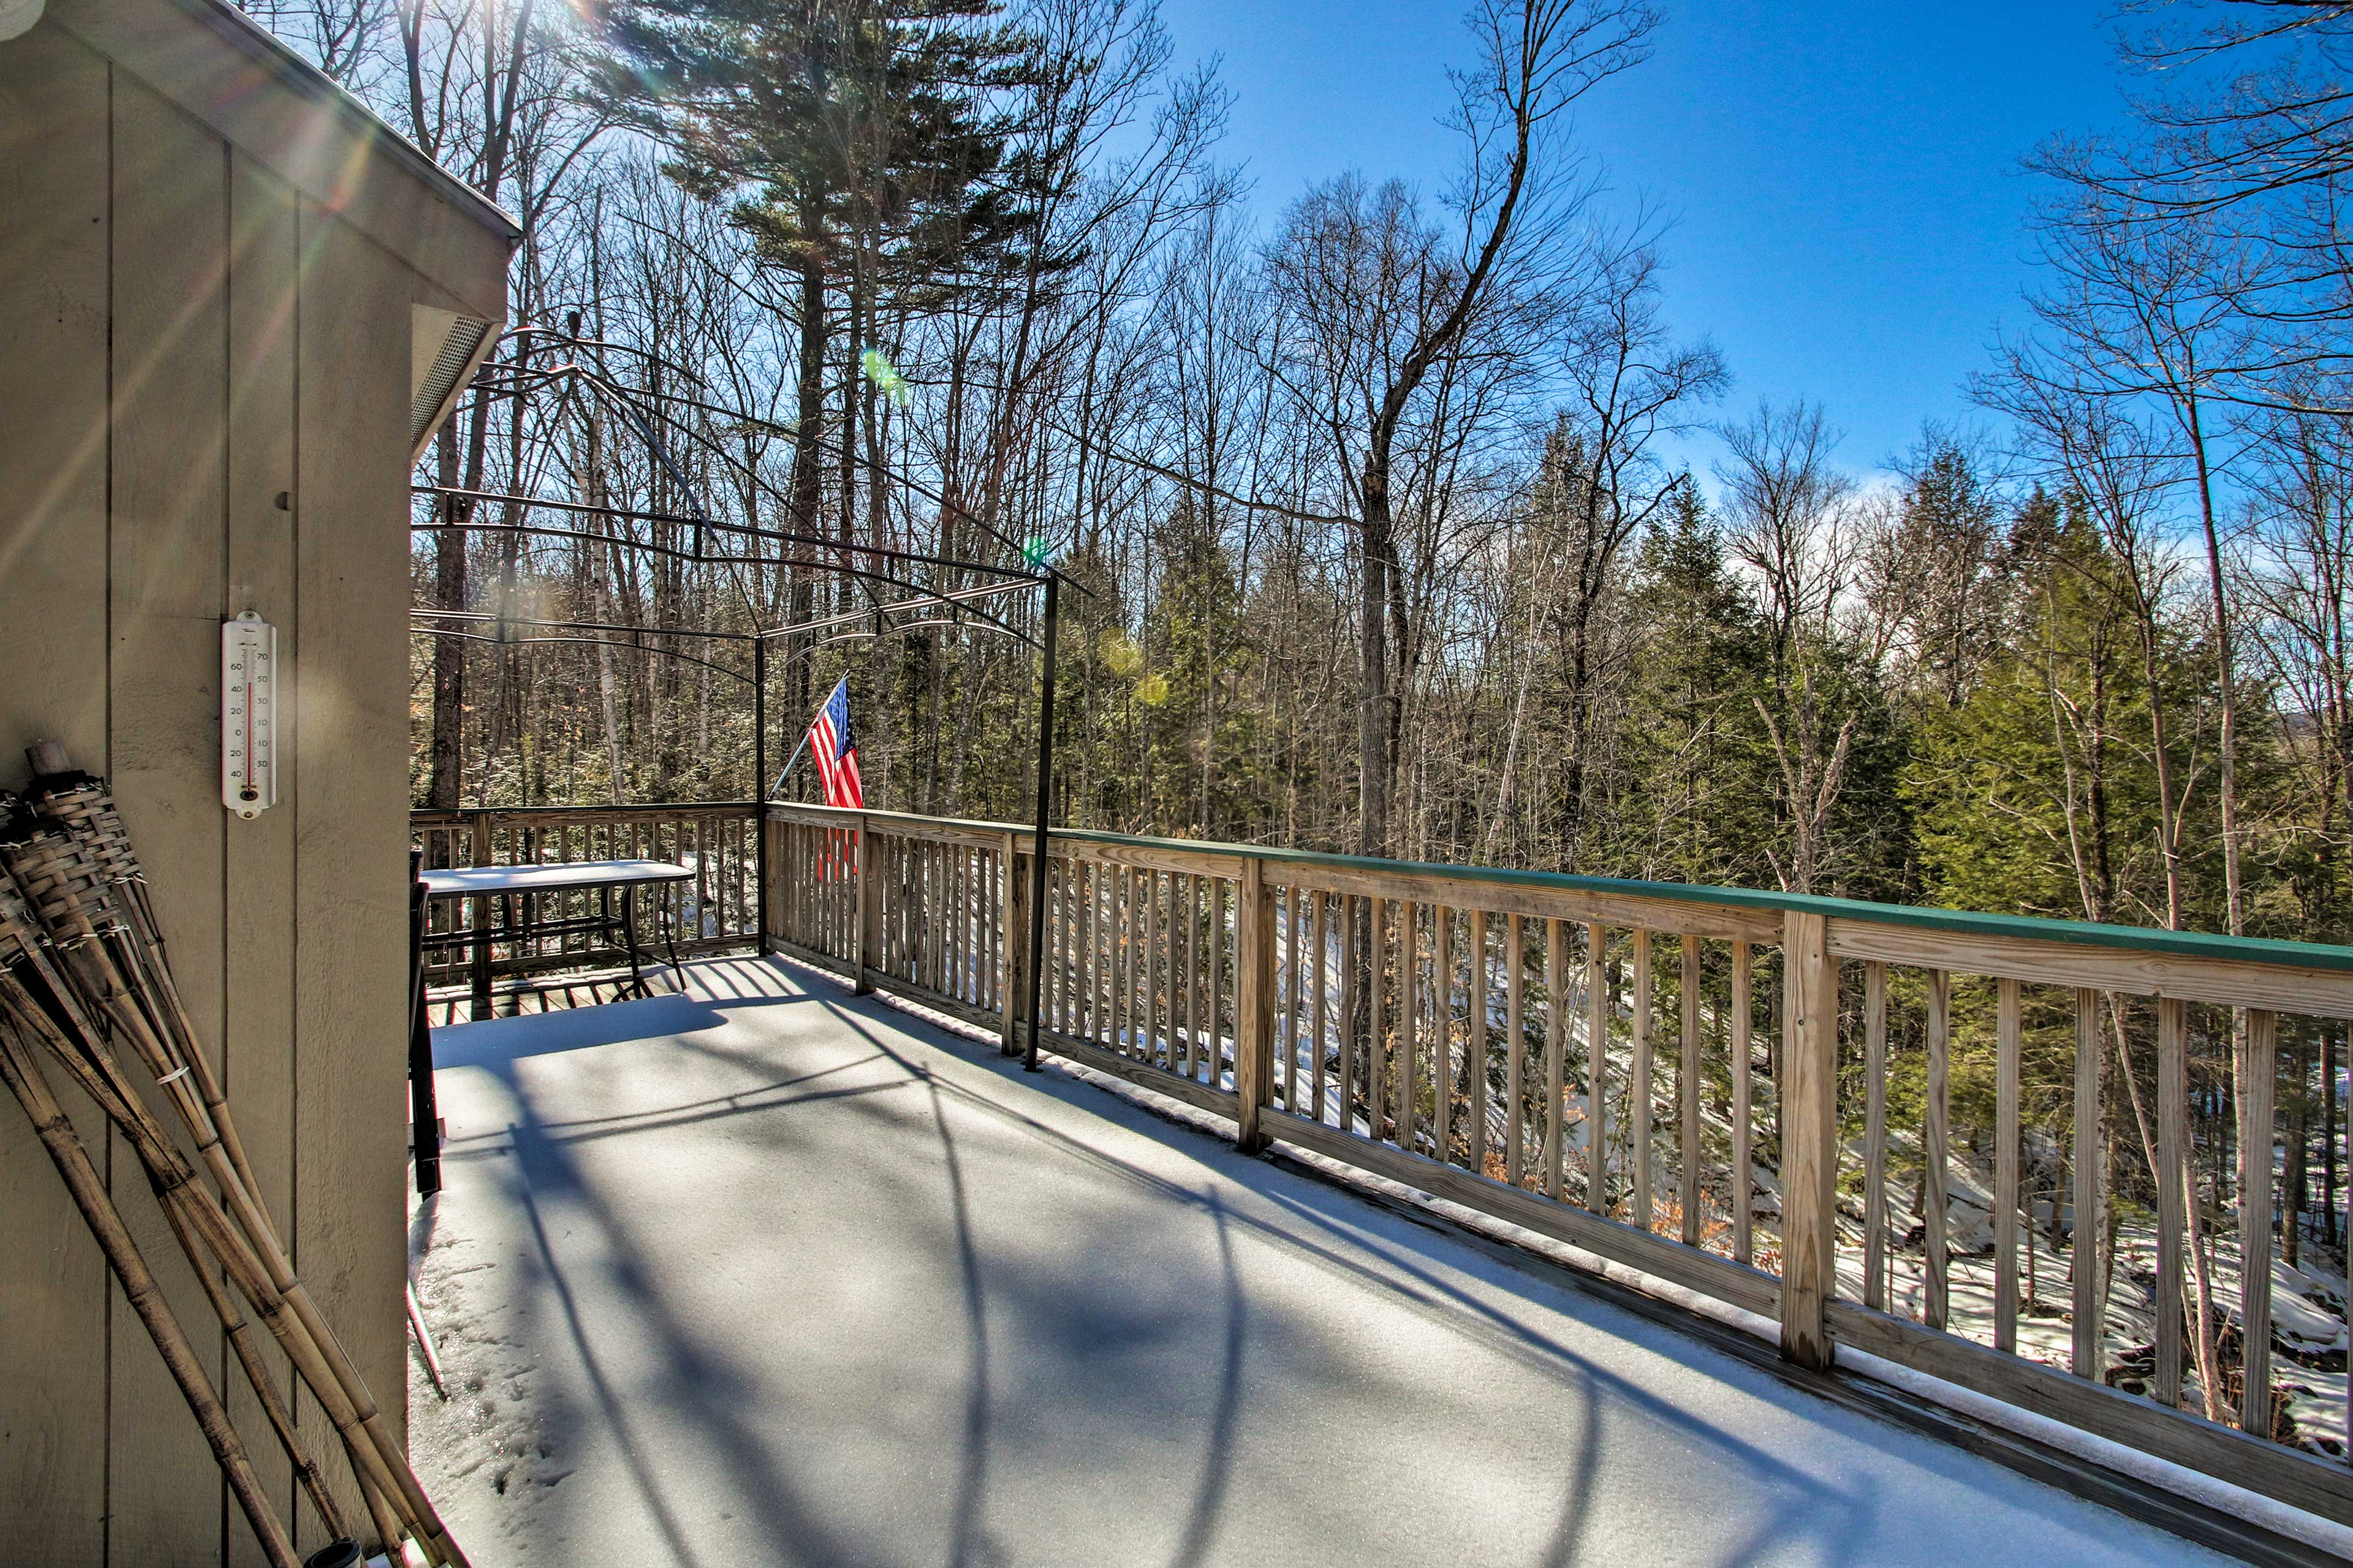 Listen to the peaceful sounds of the stream from the deck!